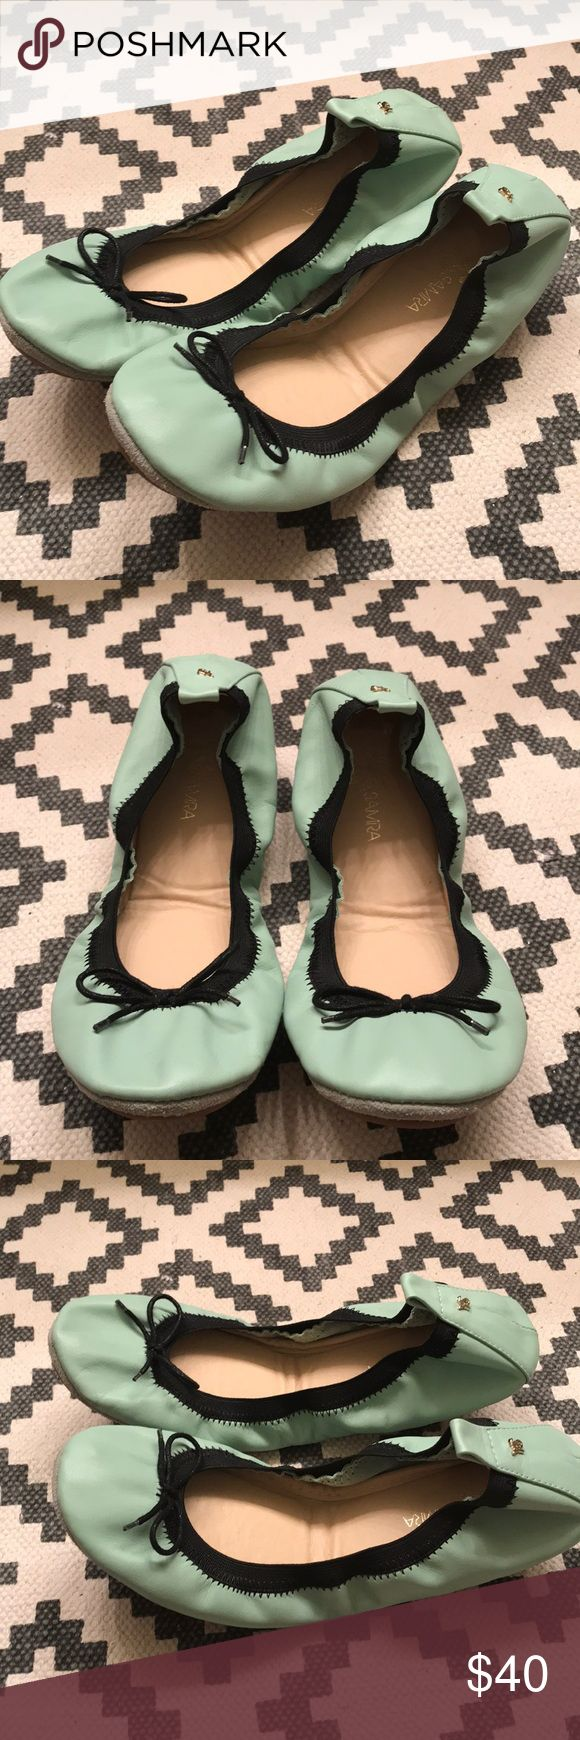 Mint Green Foldable Flat Mint Green Foldable Flats! Perfect for bringing in your purse for when you need a break from your heels! Never worn. Yosi Samra Shoes Flats & Loafers